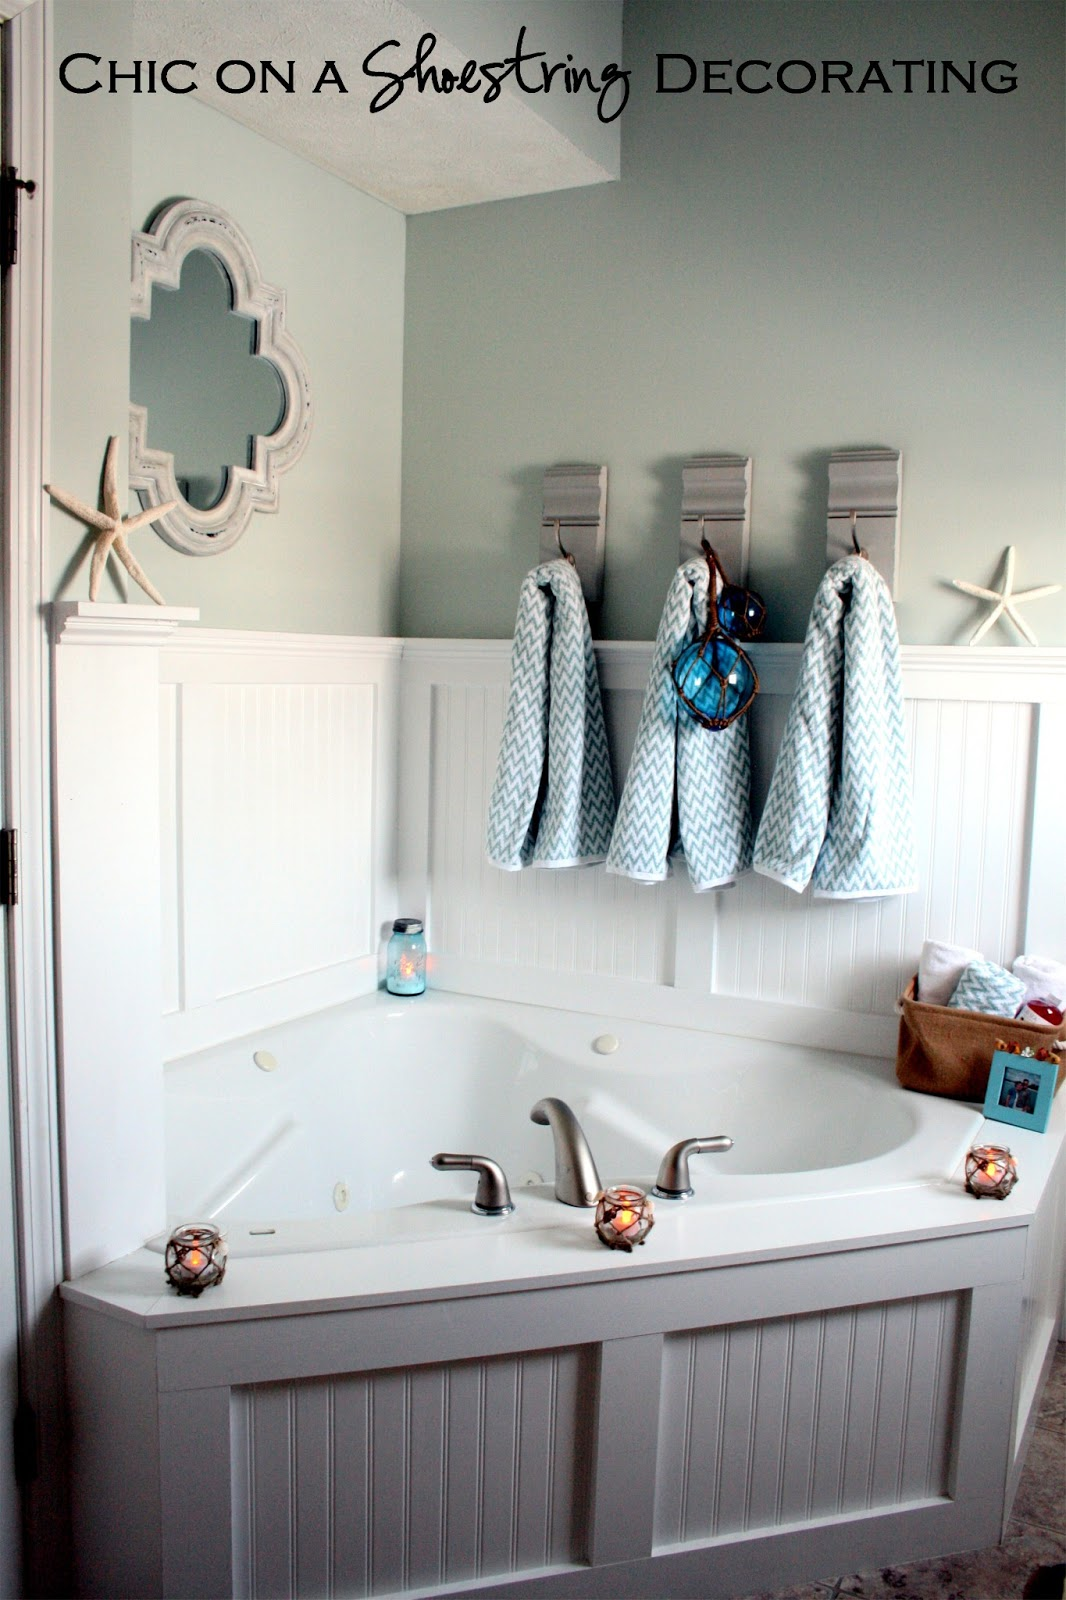 Chic on a shoestring decorating beachy bathroom reveal for Pics of bathroom decor